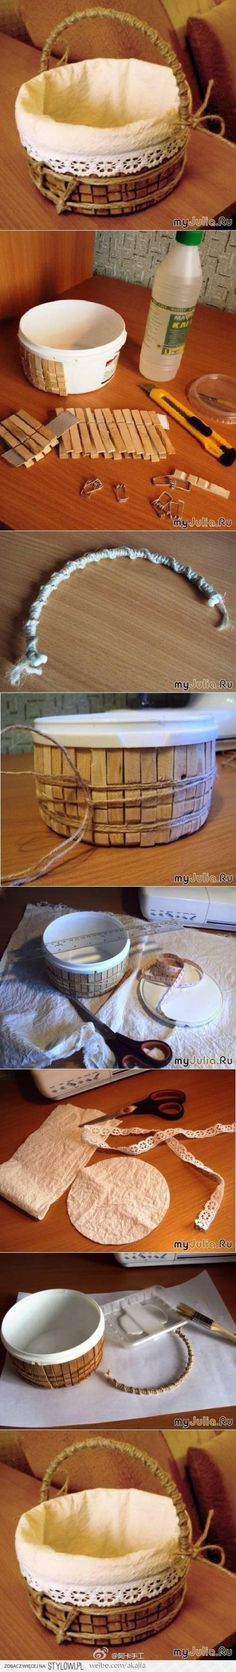 Basket made from clothes pins & an empty plastic tub.